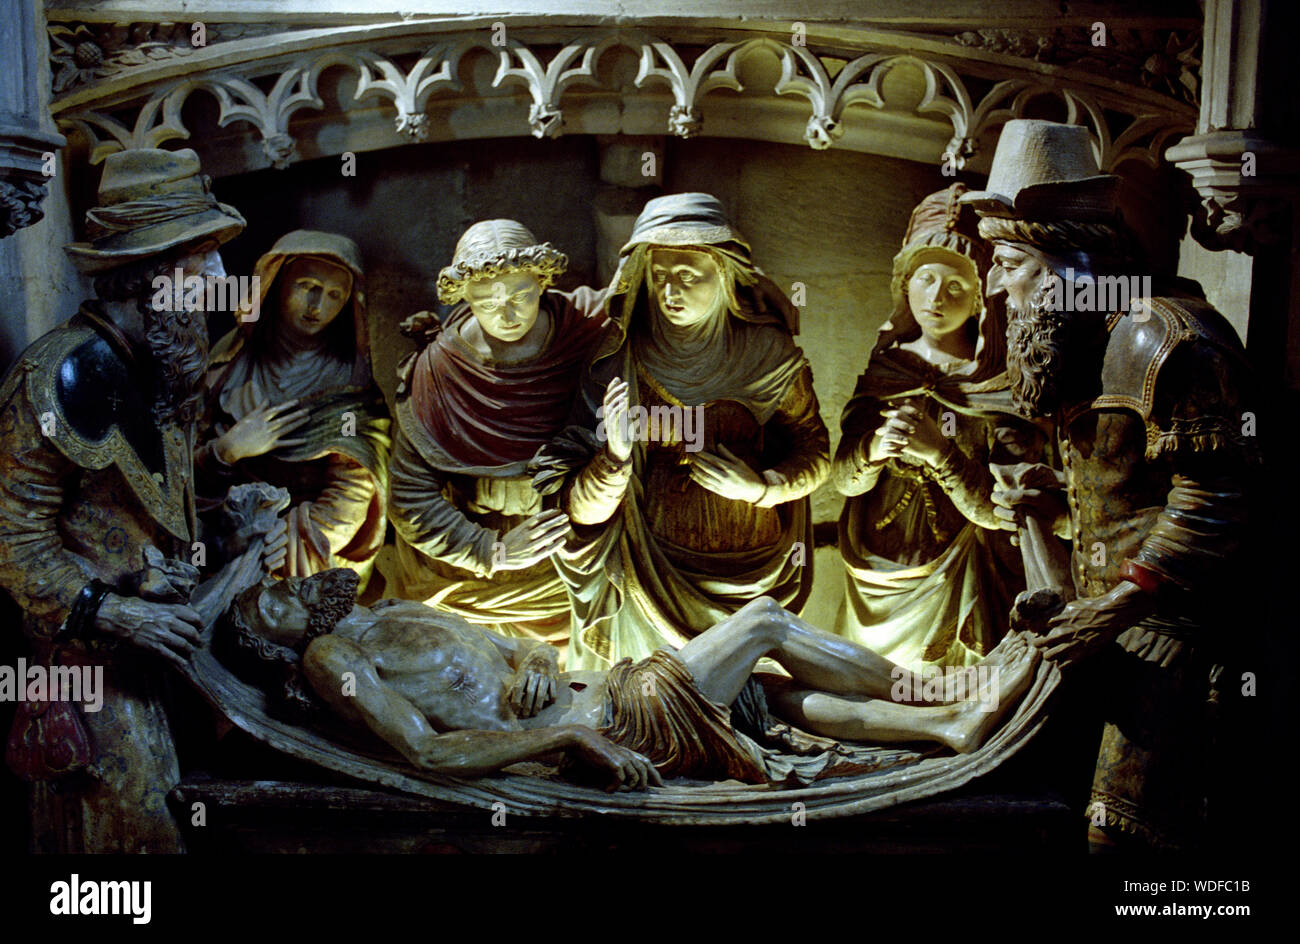 NOTRE DAME LA GRANDE POITIERS FRANCE - ENTOMBMENT REALISED BY UNKNOWN ARTIST 1555 - POLYCHROMY STATUE  - ROMANESQUE CHURCH - MISE AU TOMBEAU À NOTRE-DAME-LA-GRANDE POITIERS - SILVER IMAGE © Frédéric BEAUMONT Stock Photo